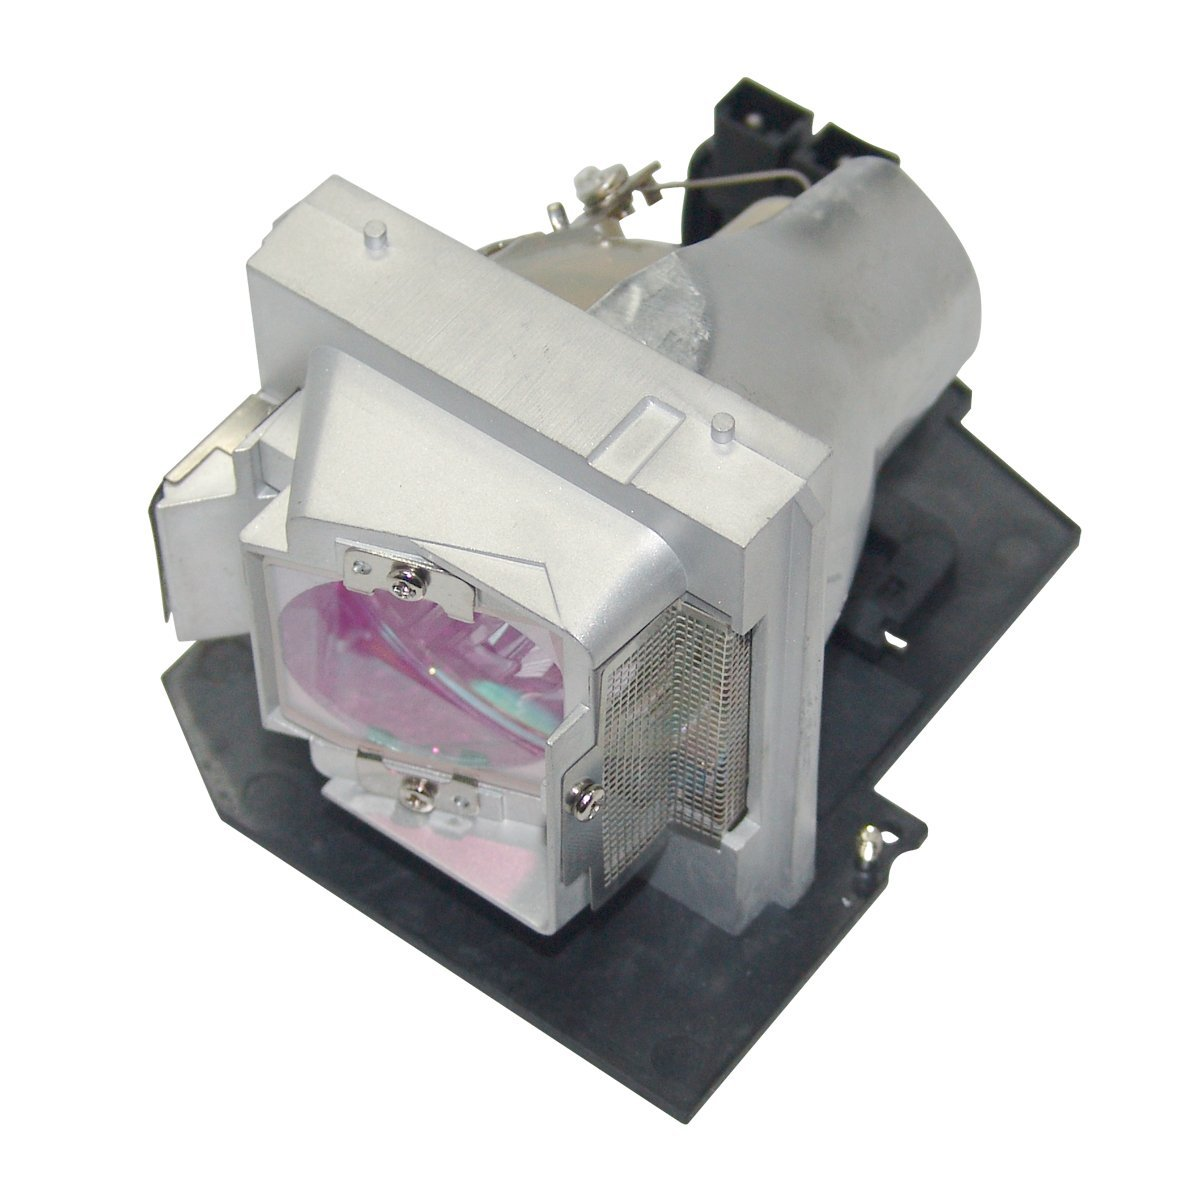 Lutema 311-9421 Dell 311-9421 725-10127 Replacement LCD/DLP Projector Lamp (Philips Inside) by Lutema